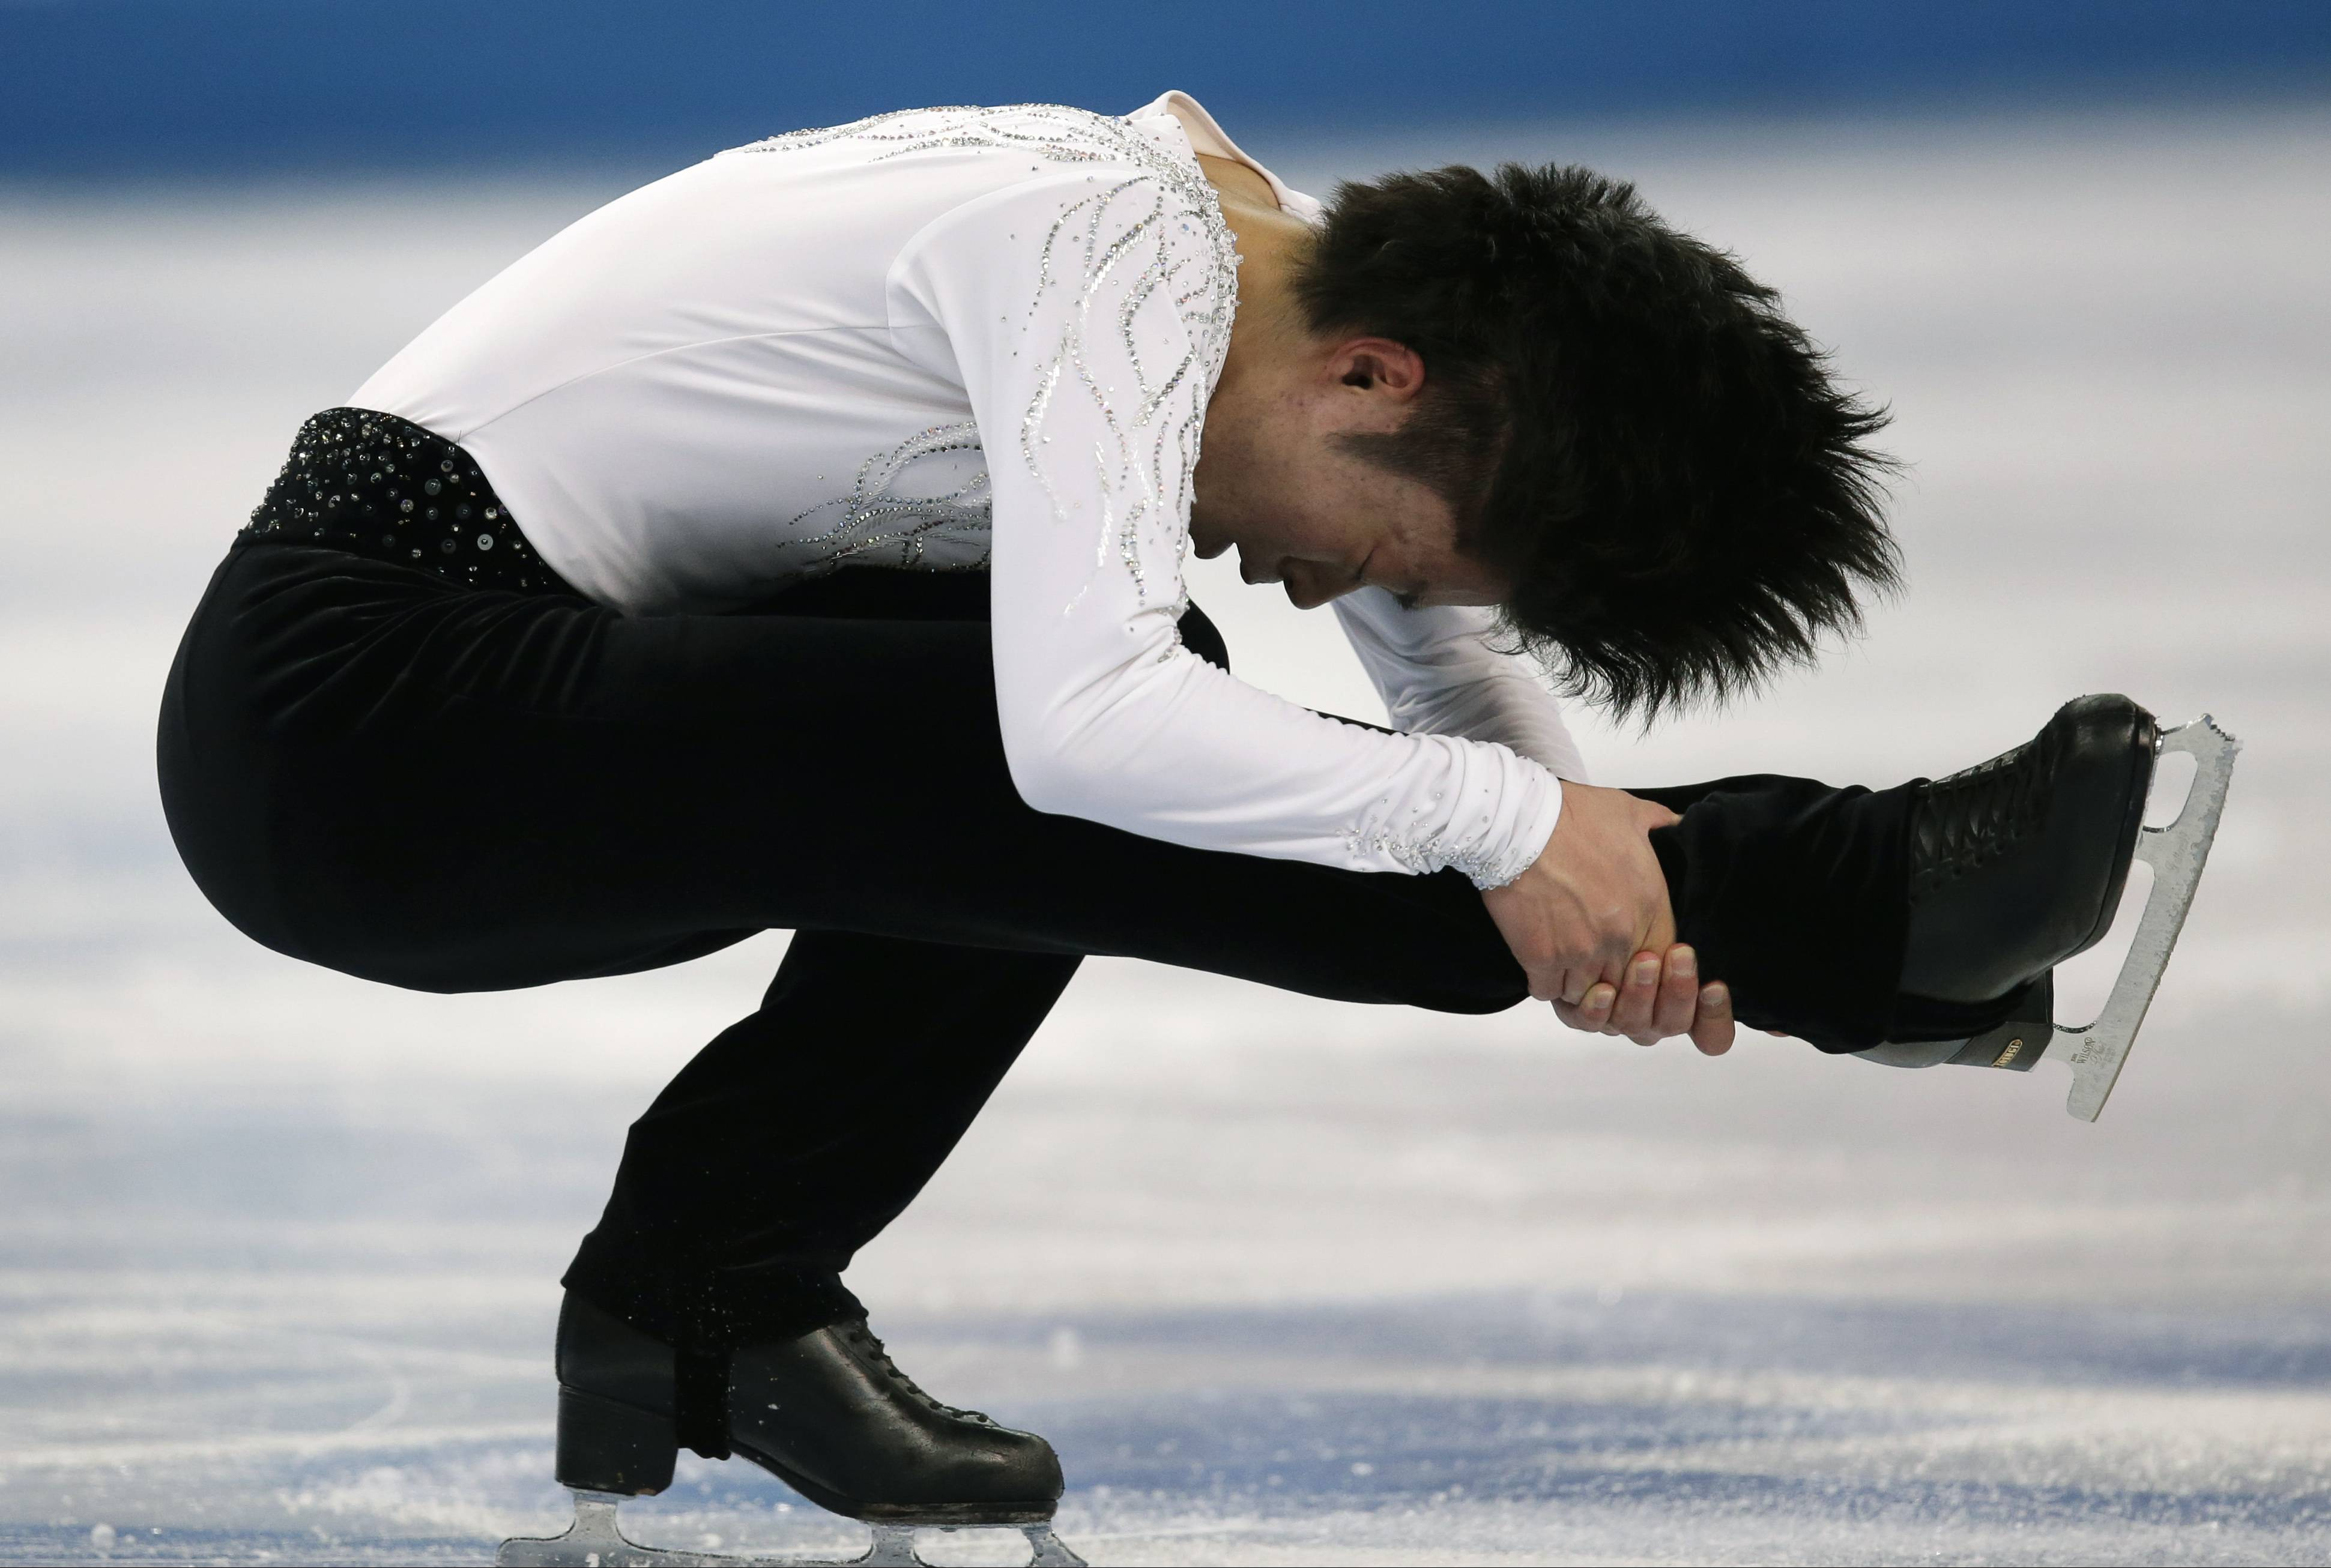 Tatsuki Machida of Japan competes in the men's short program figure skating competition.